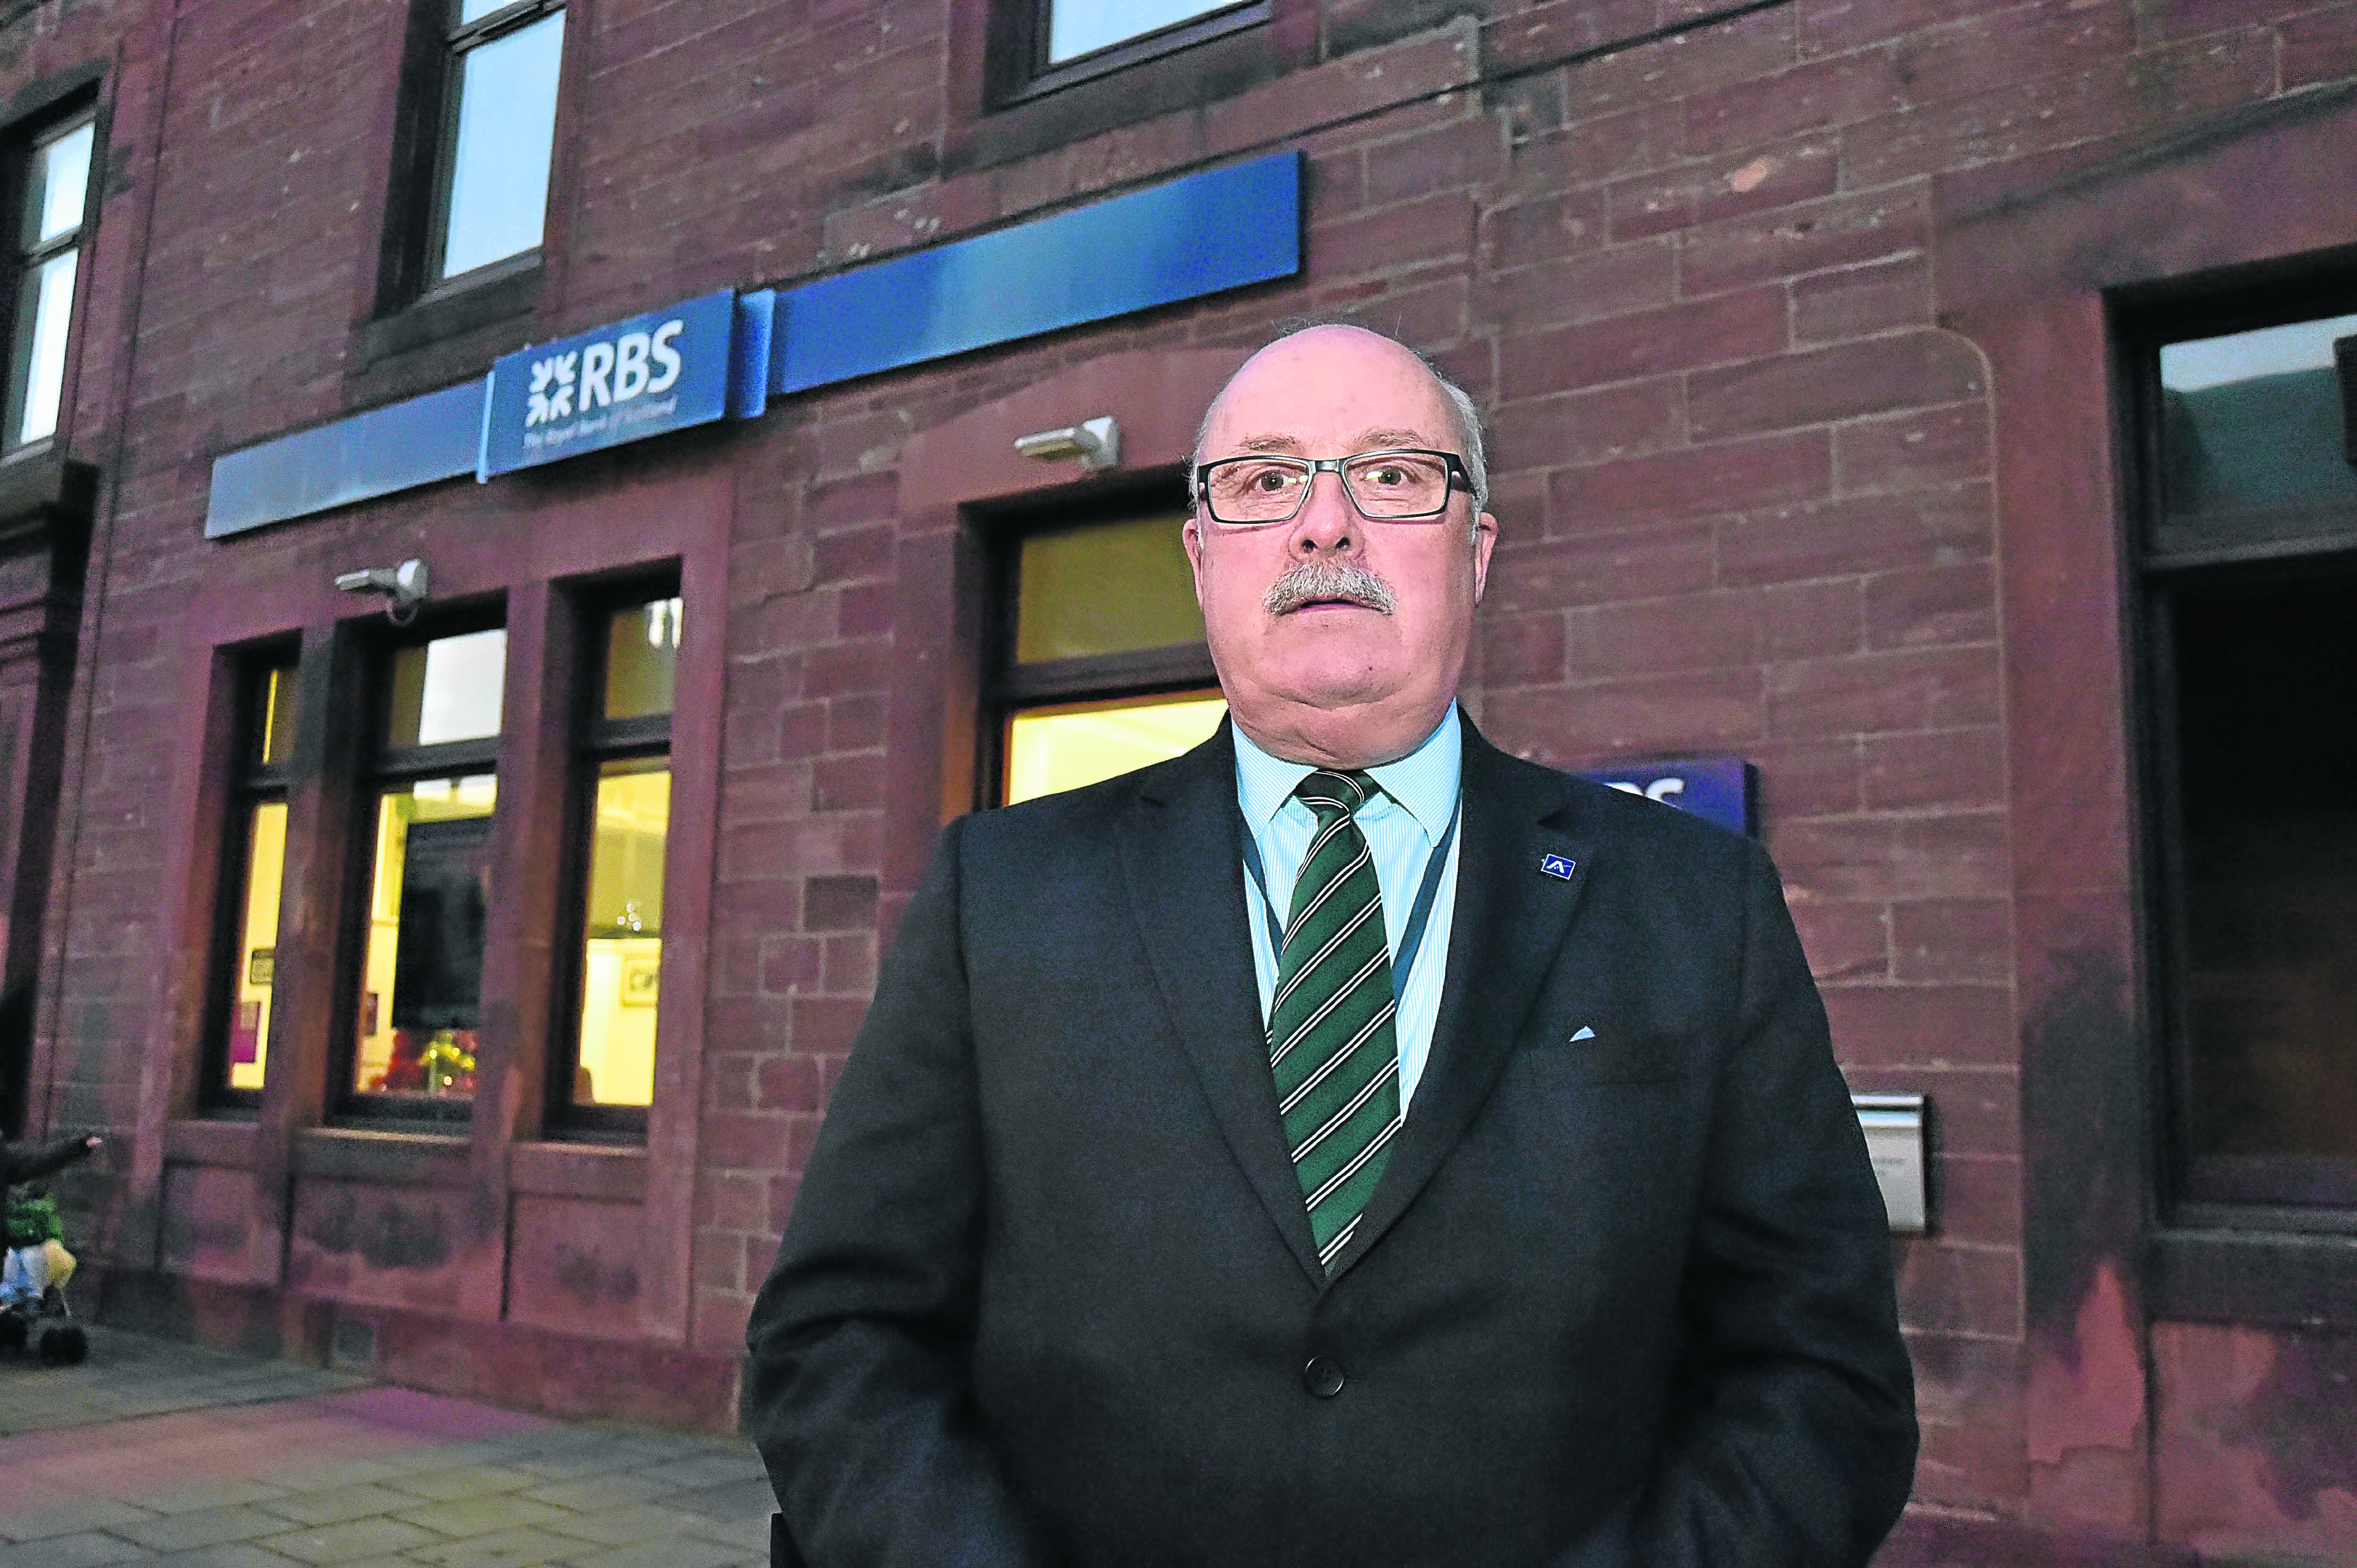 Alistair Forsyth outside the earmarked RBS branch in Turriff.